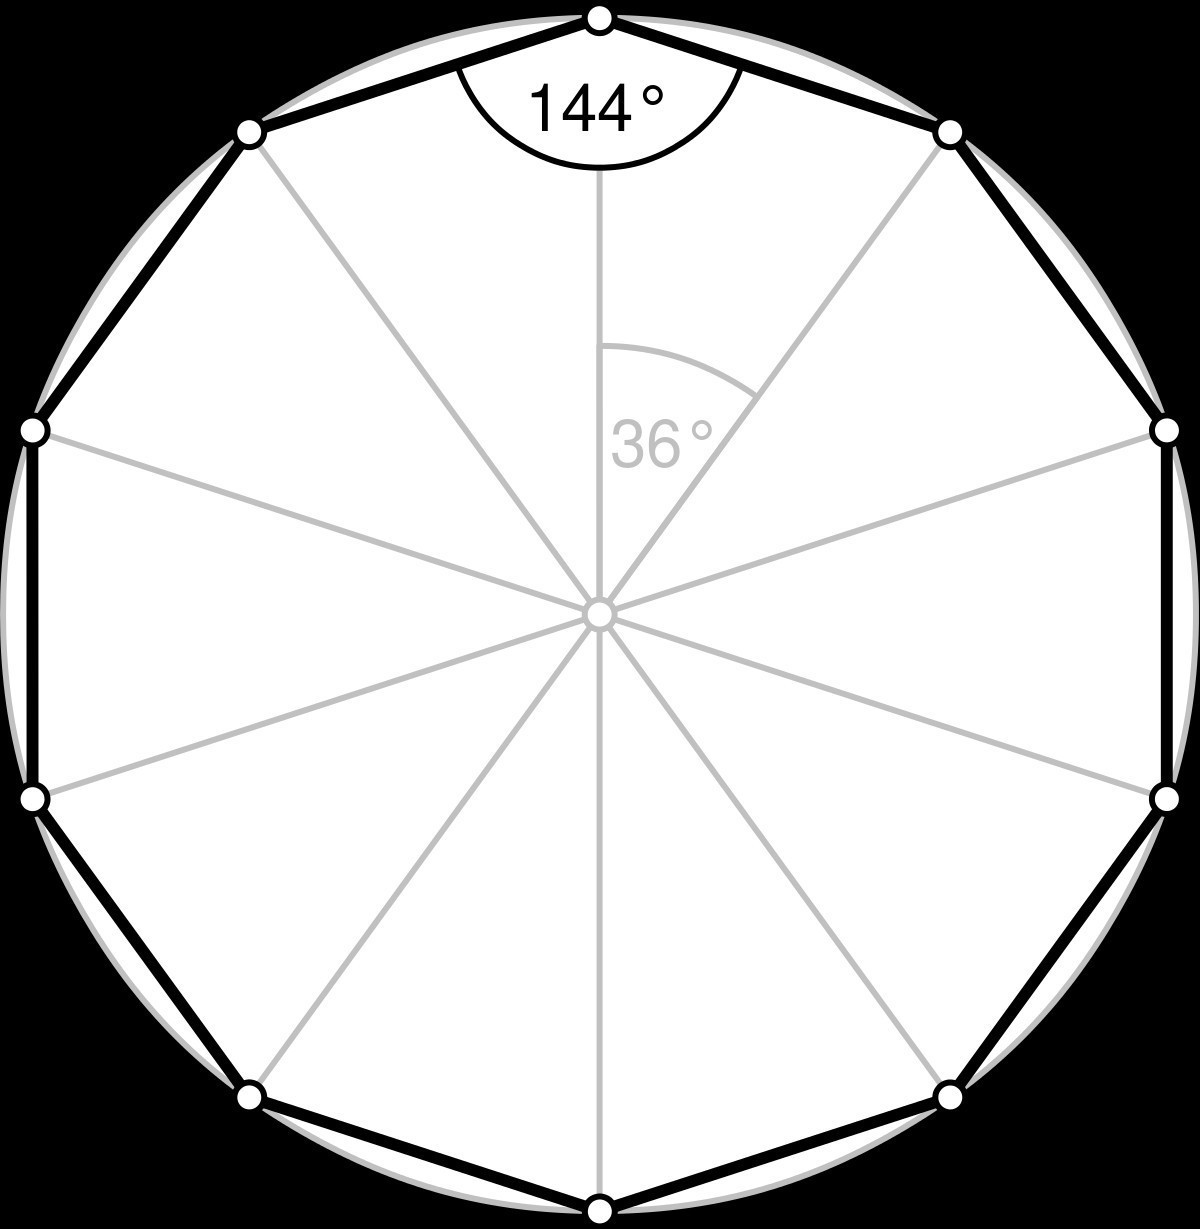 Draw A Decagon 10sides And Nonagon 9 Sides Brainly In